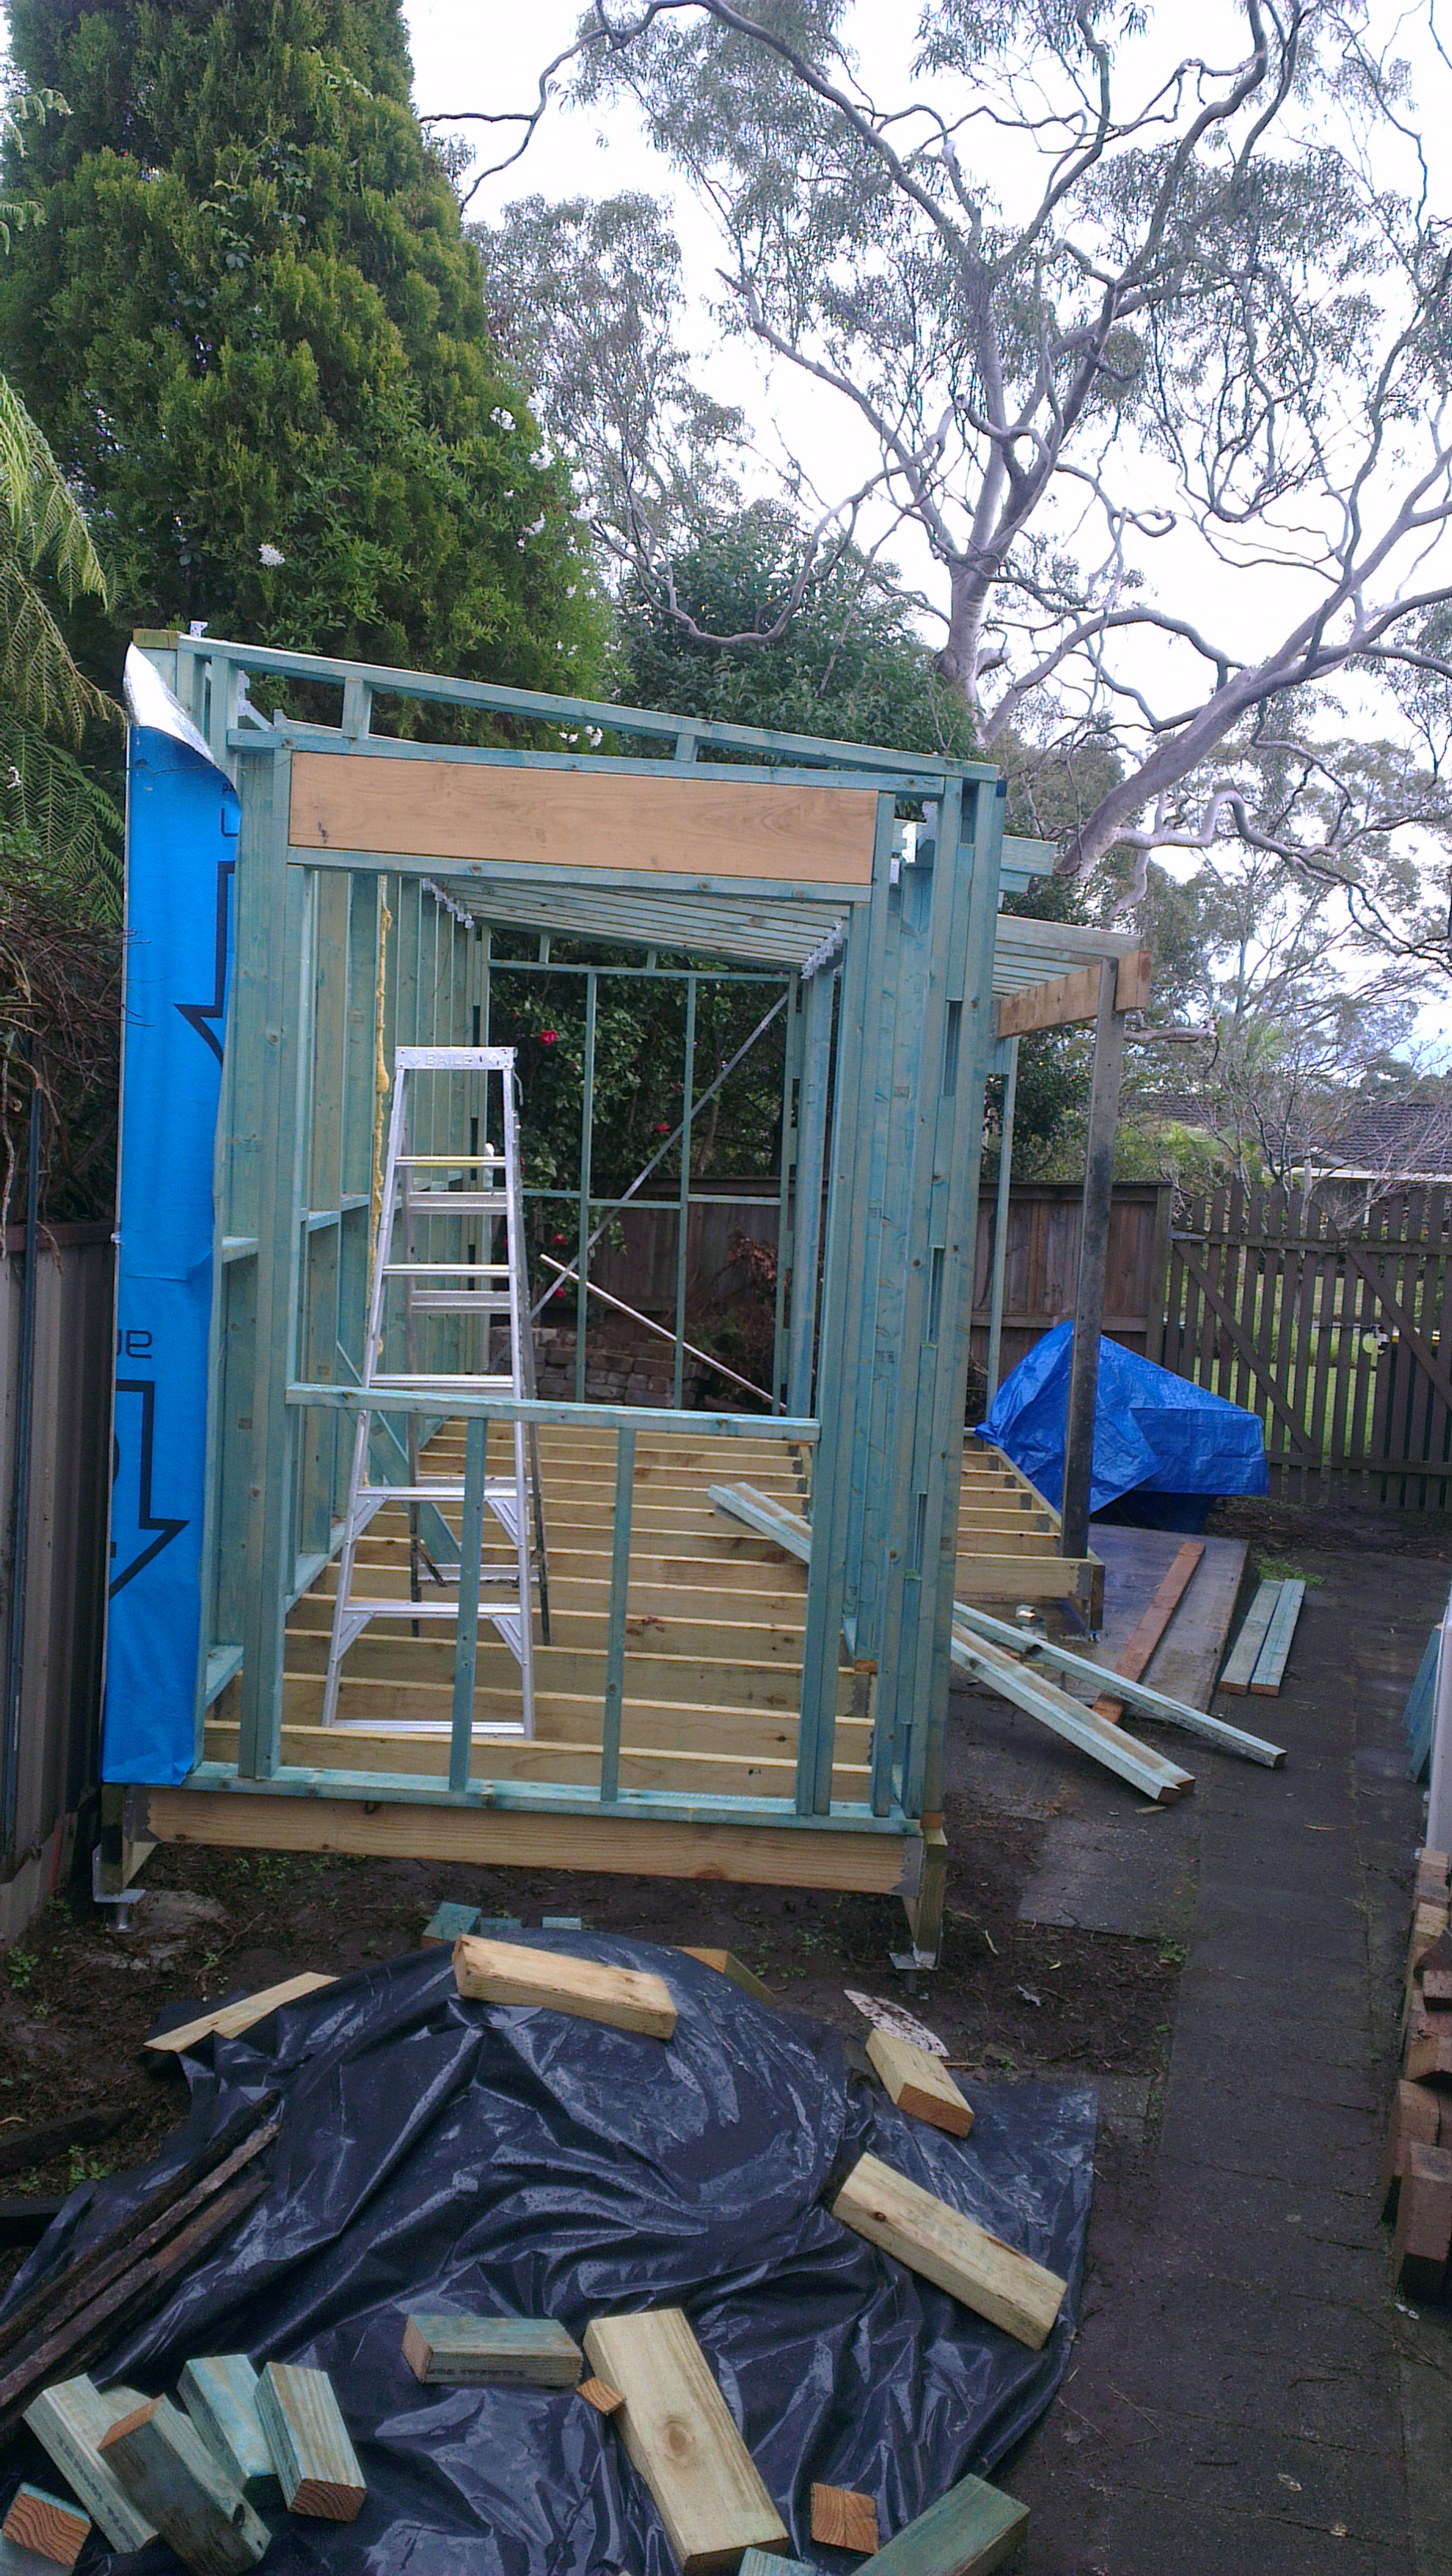 A shed being built, floor joists and wall supports can be seen with an aluminium ladder inside. More building materials are on the ground.